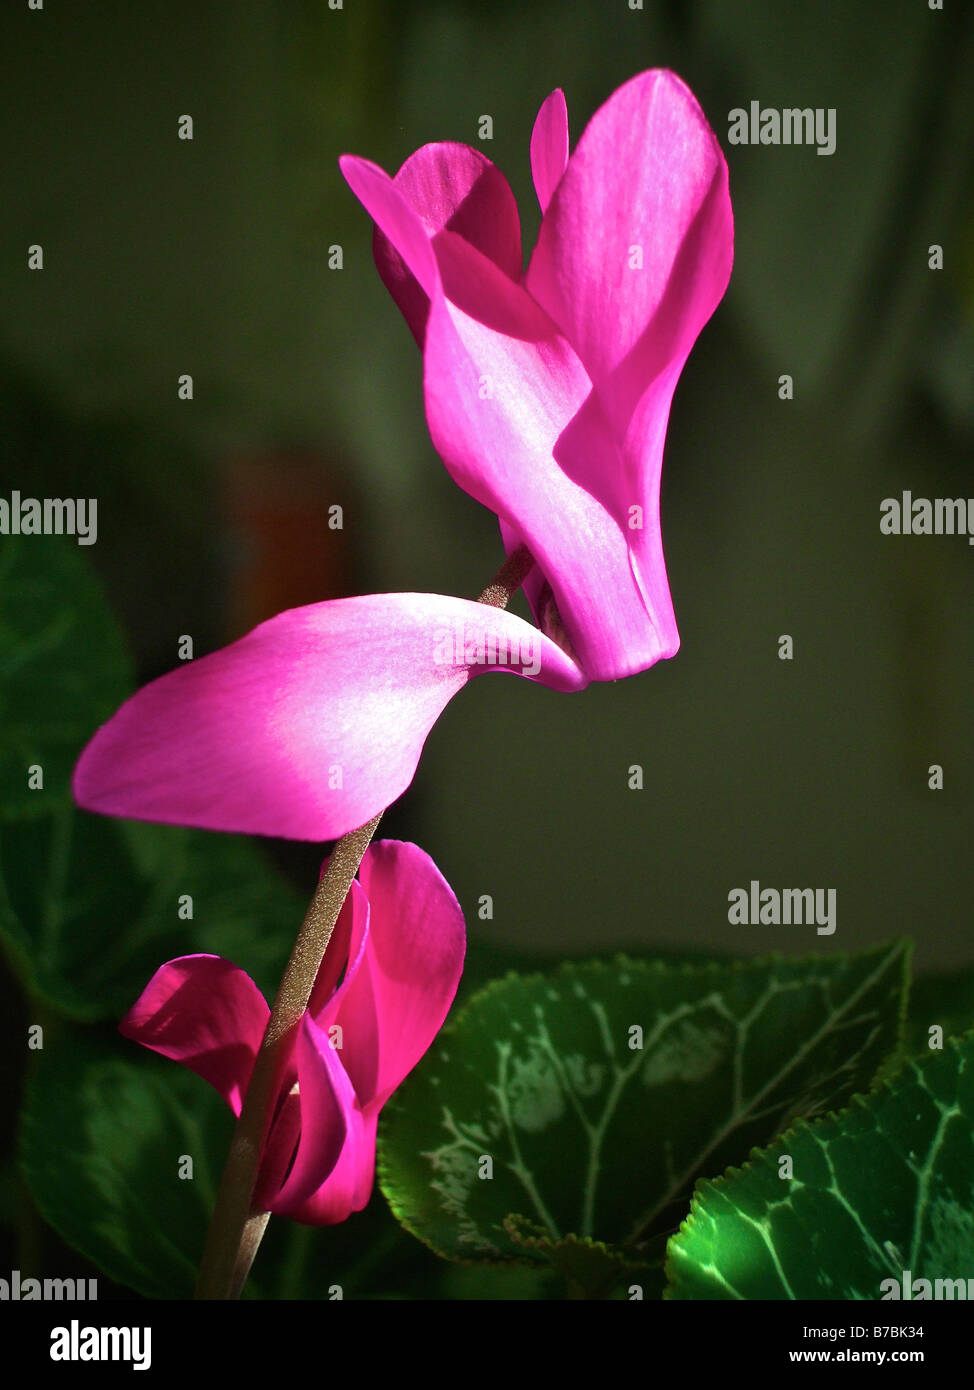 Closeup of a flowering house plant bright pink flowers against deep closeup of a flowering house plant bright pink flowers against deep green leaves mightylinksfo Choice Image